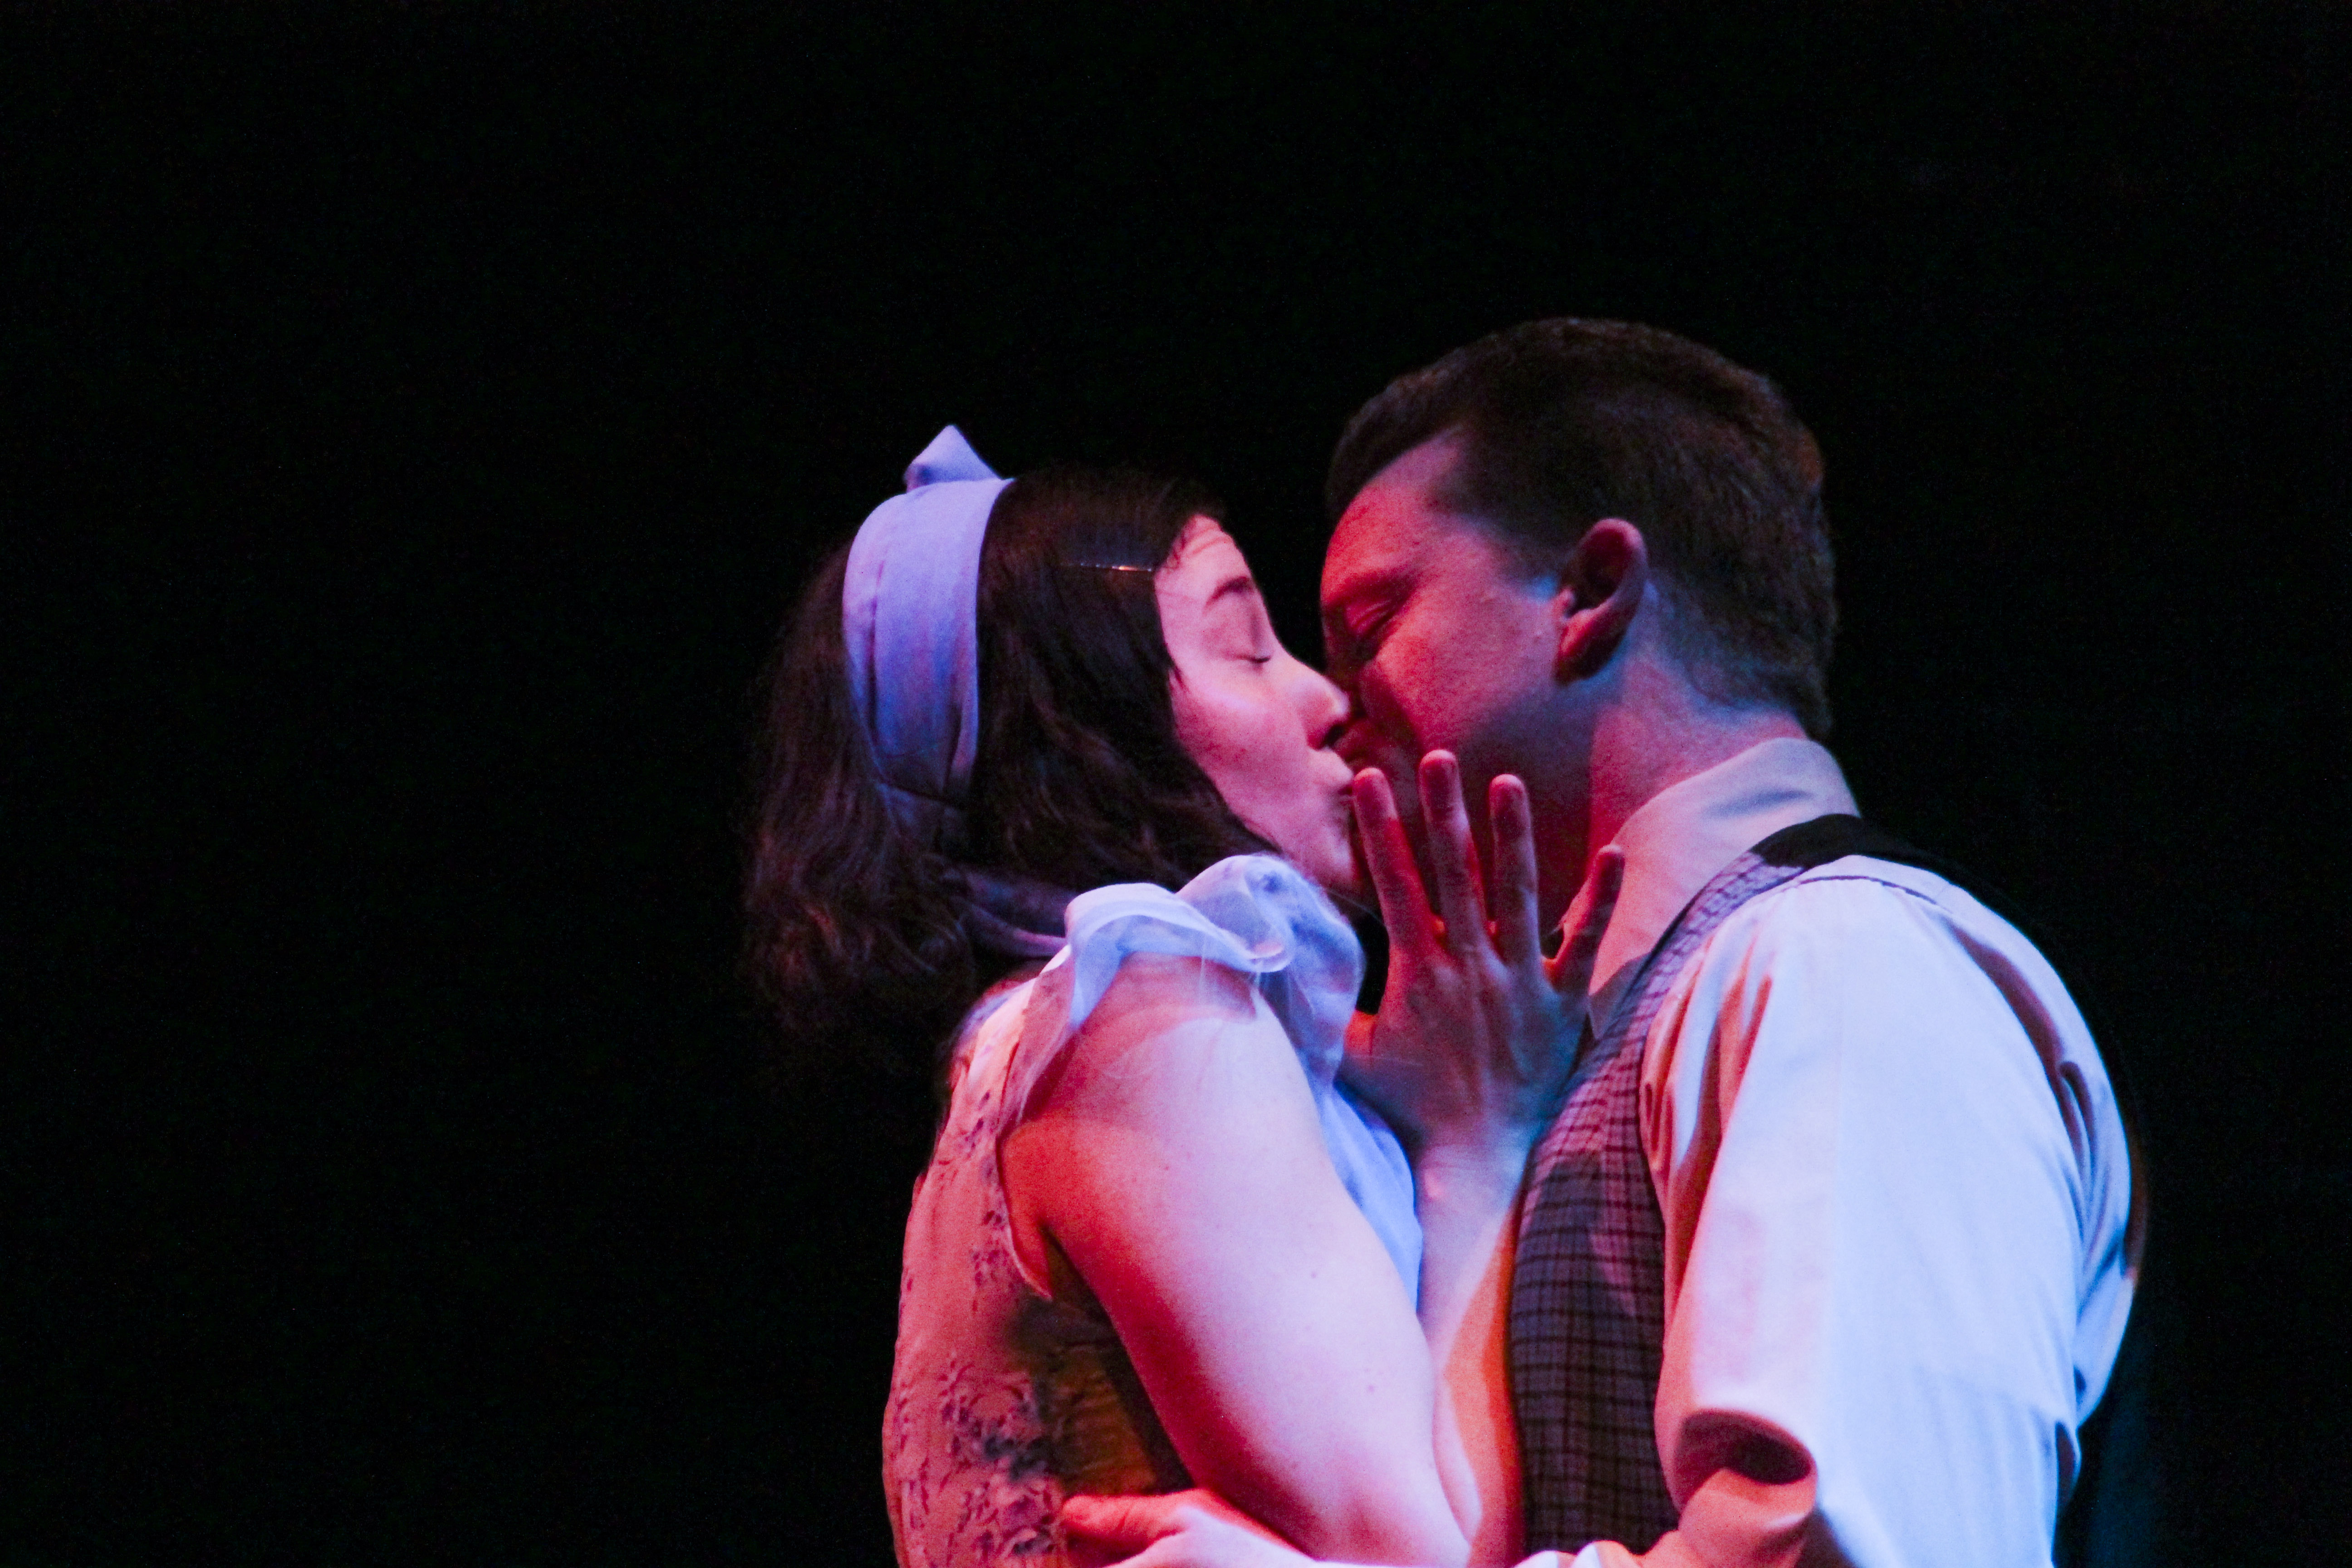 Jim O'Connor (right, performed by Ryan Balfour) surprises Laura (left, performed by Abby Fields) with a kiss in the dress rehearsal of The Glass Menagerie by Tennessee Williams playiing at Palomar College. Lucas Spenser/Telescope.